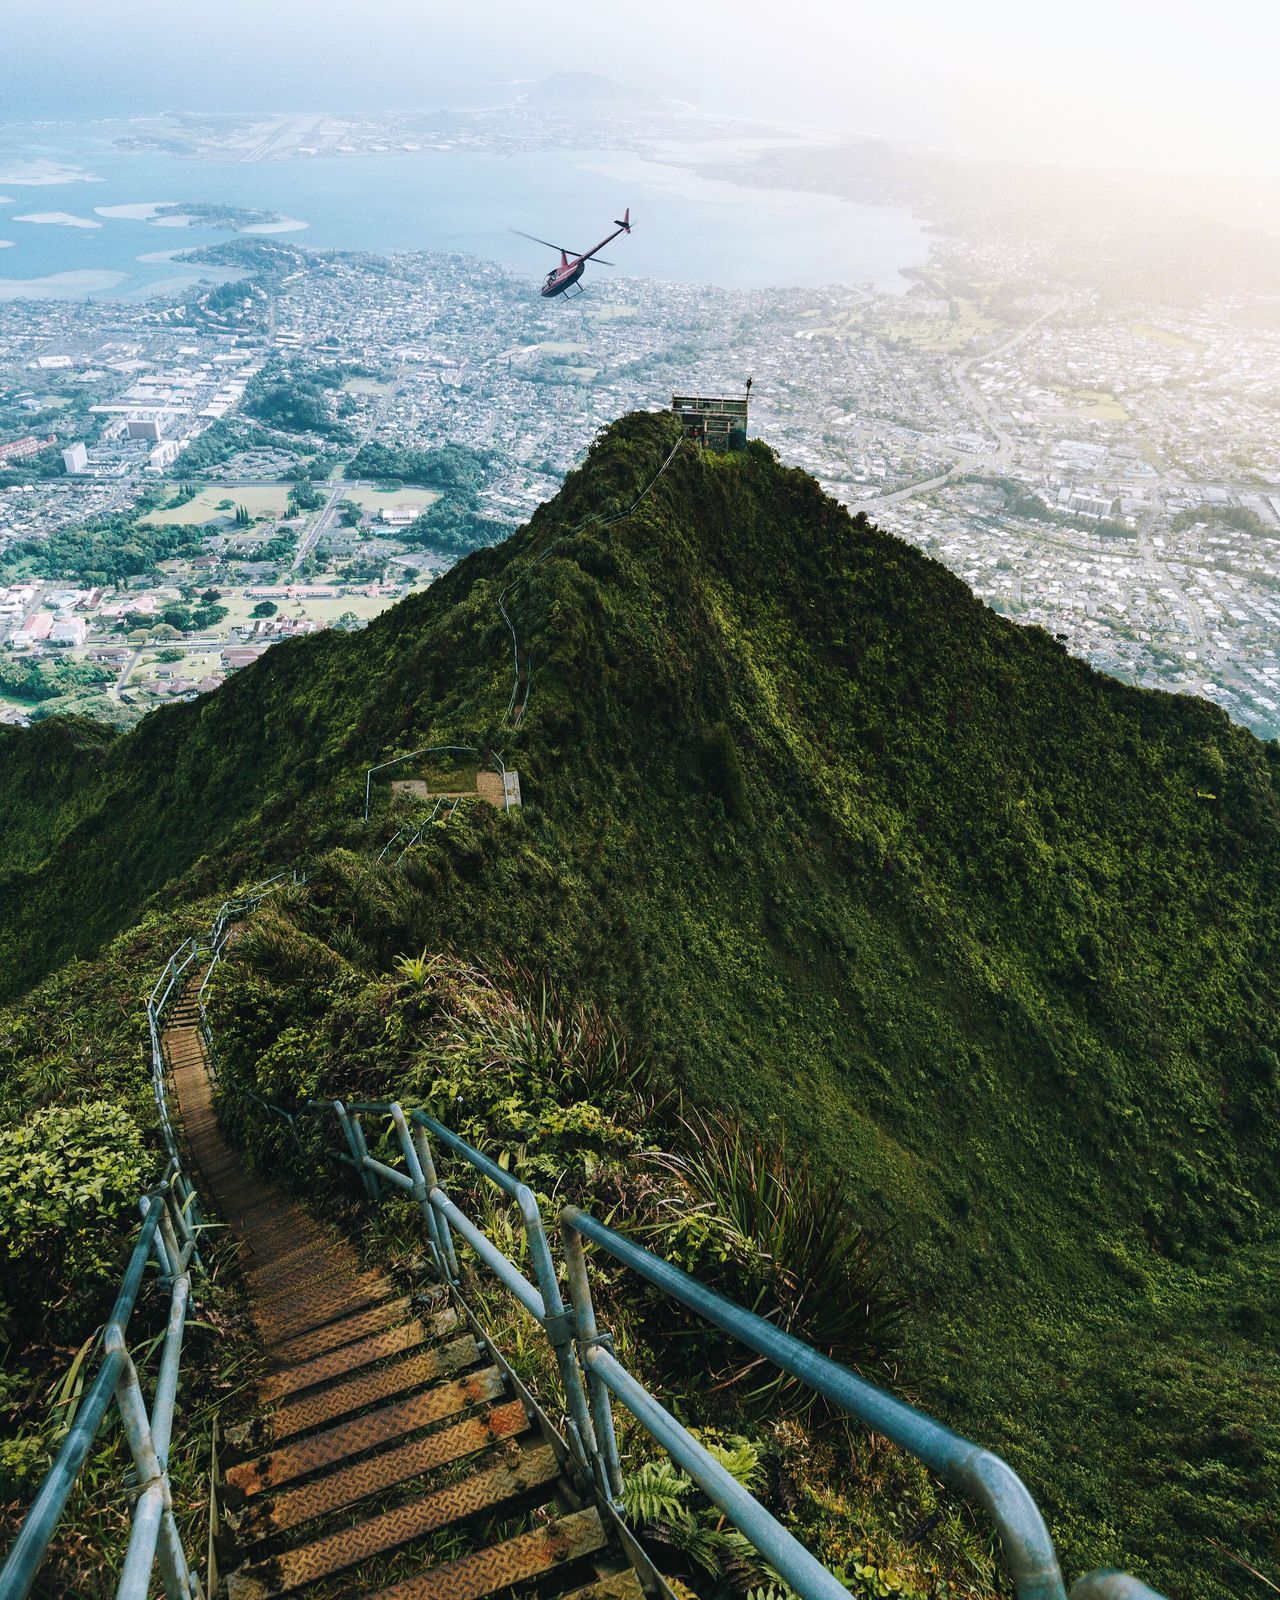 Greatest hike on Earth. Presets still on sale. Nature High Angle View Sea Beauty In Nature Scenics Day Tranquility Sky Tranquil Scene Landscape Mountain Water No People Horizon Over Water Outdoors